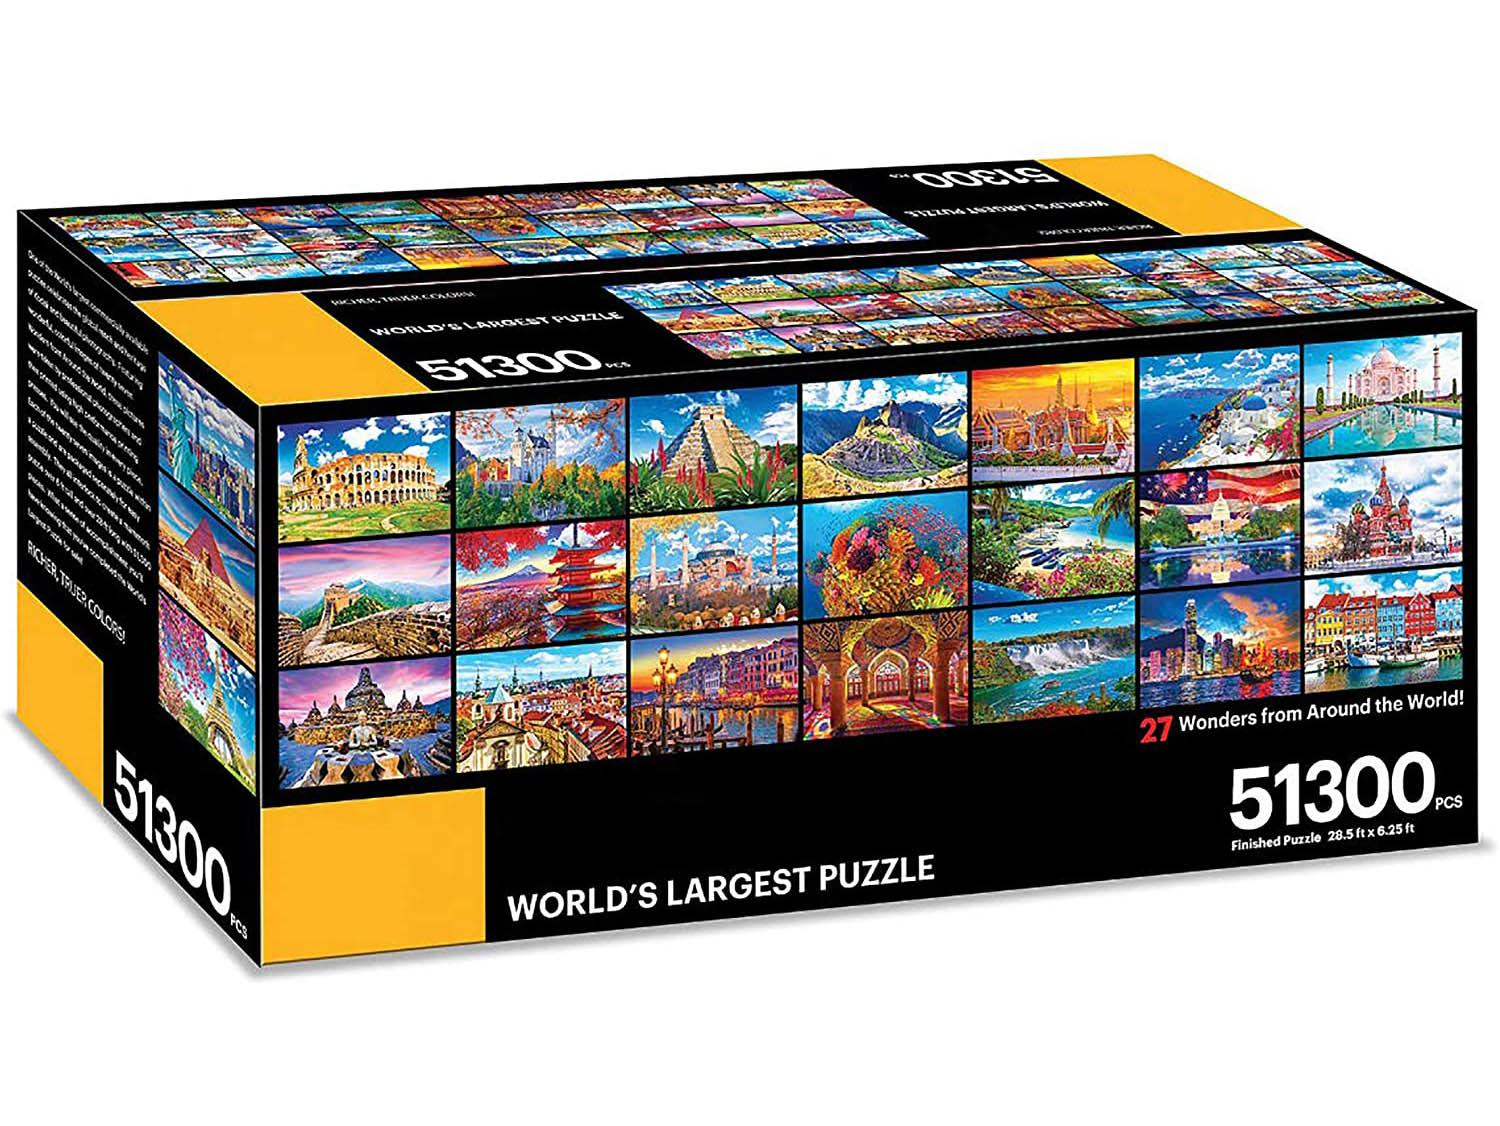 Premium 500 Piece Jigsaw Puzzle for Adults World Beer Collection Poster Included 500 pc Jigsaw Puzzle for Beginners Puzzle Life